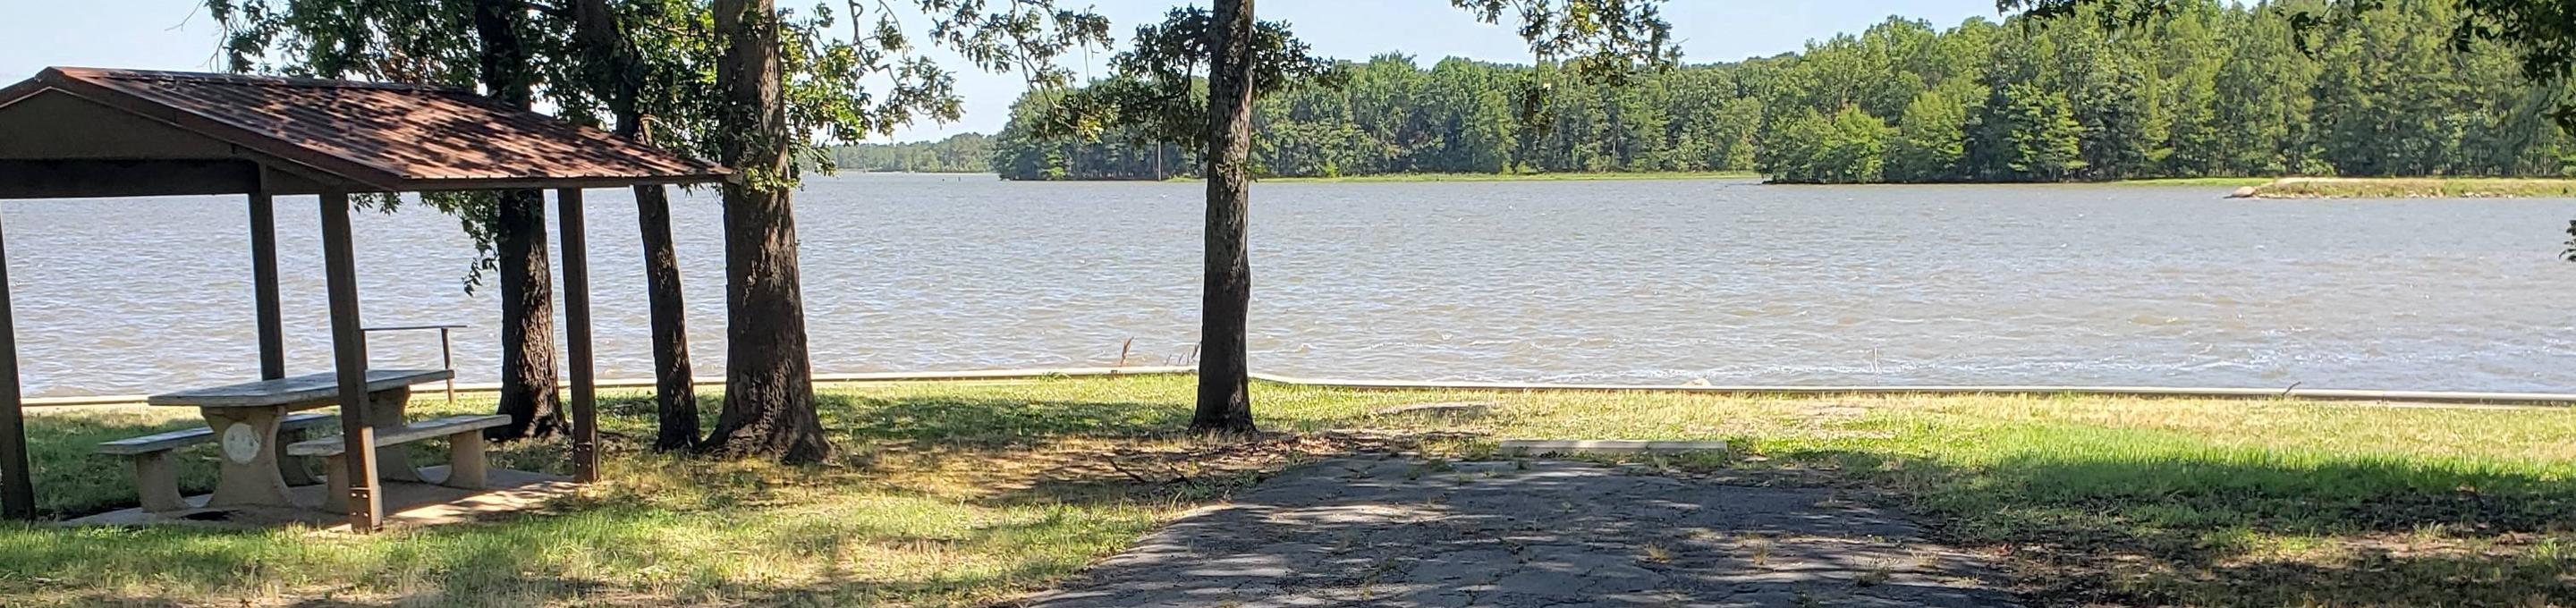 150 Yards to Shower/Restroom. 100 yards to Merrisach Lake AccessA-9